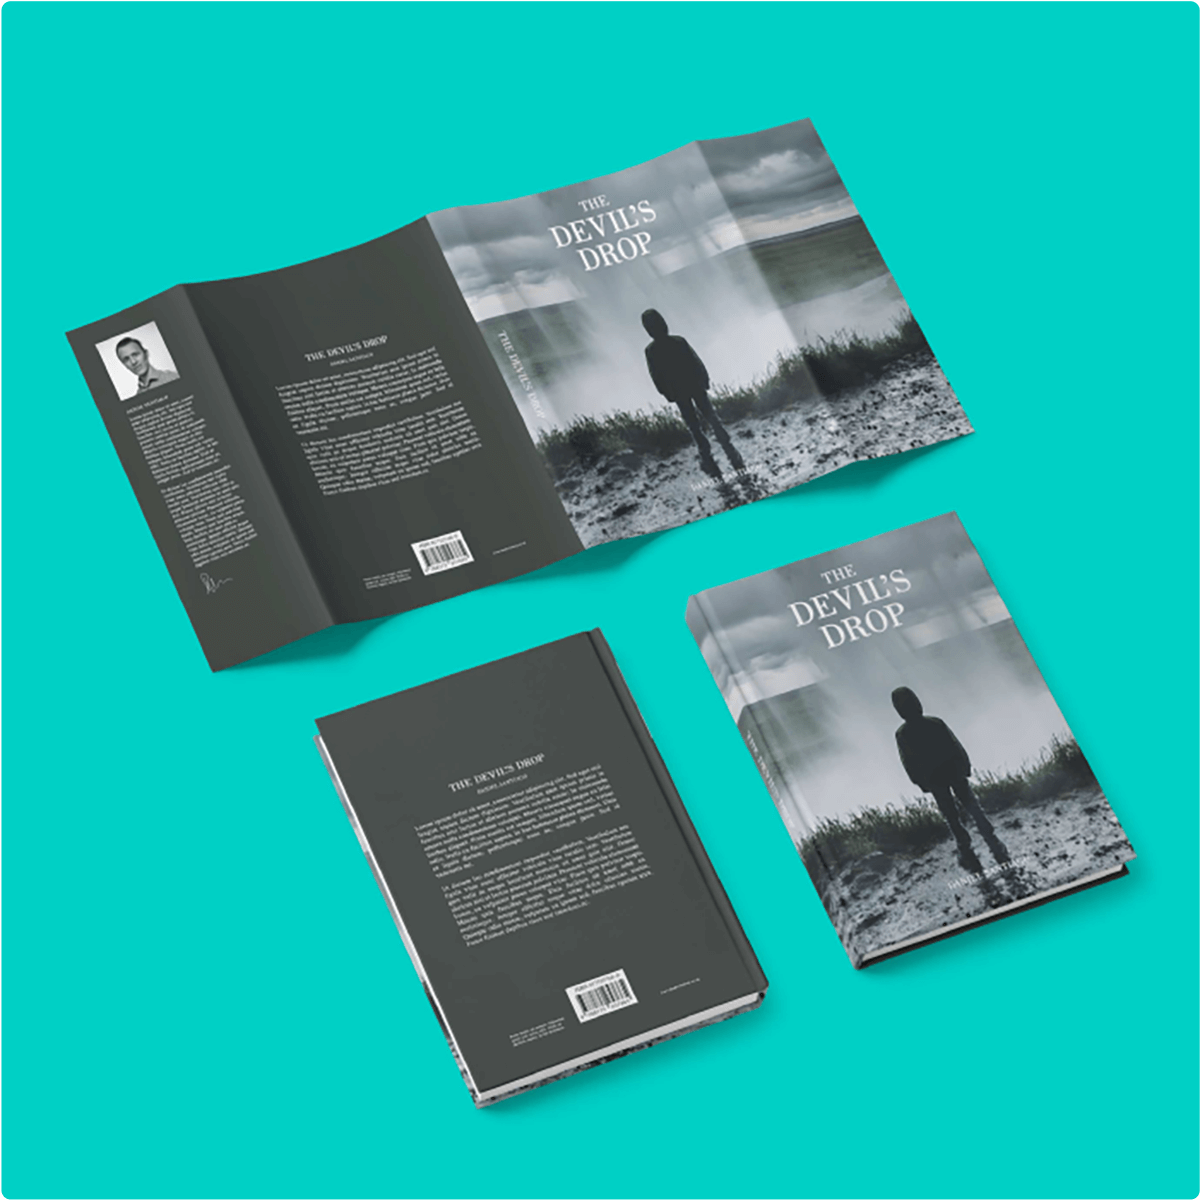 Functionality without the fuss - dust jackets made to last